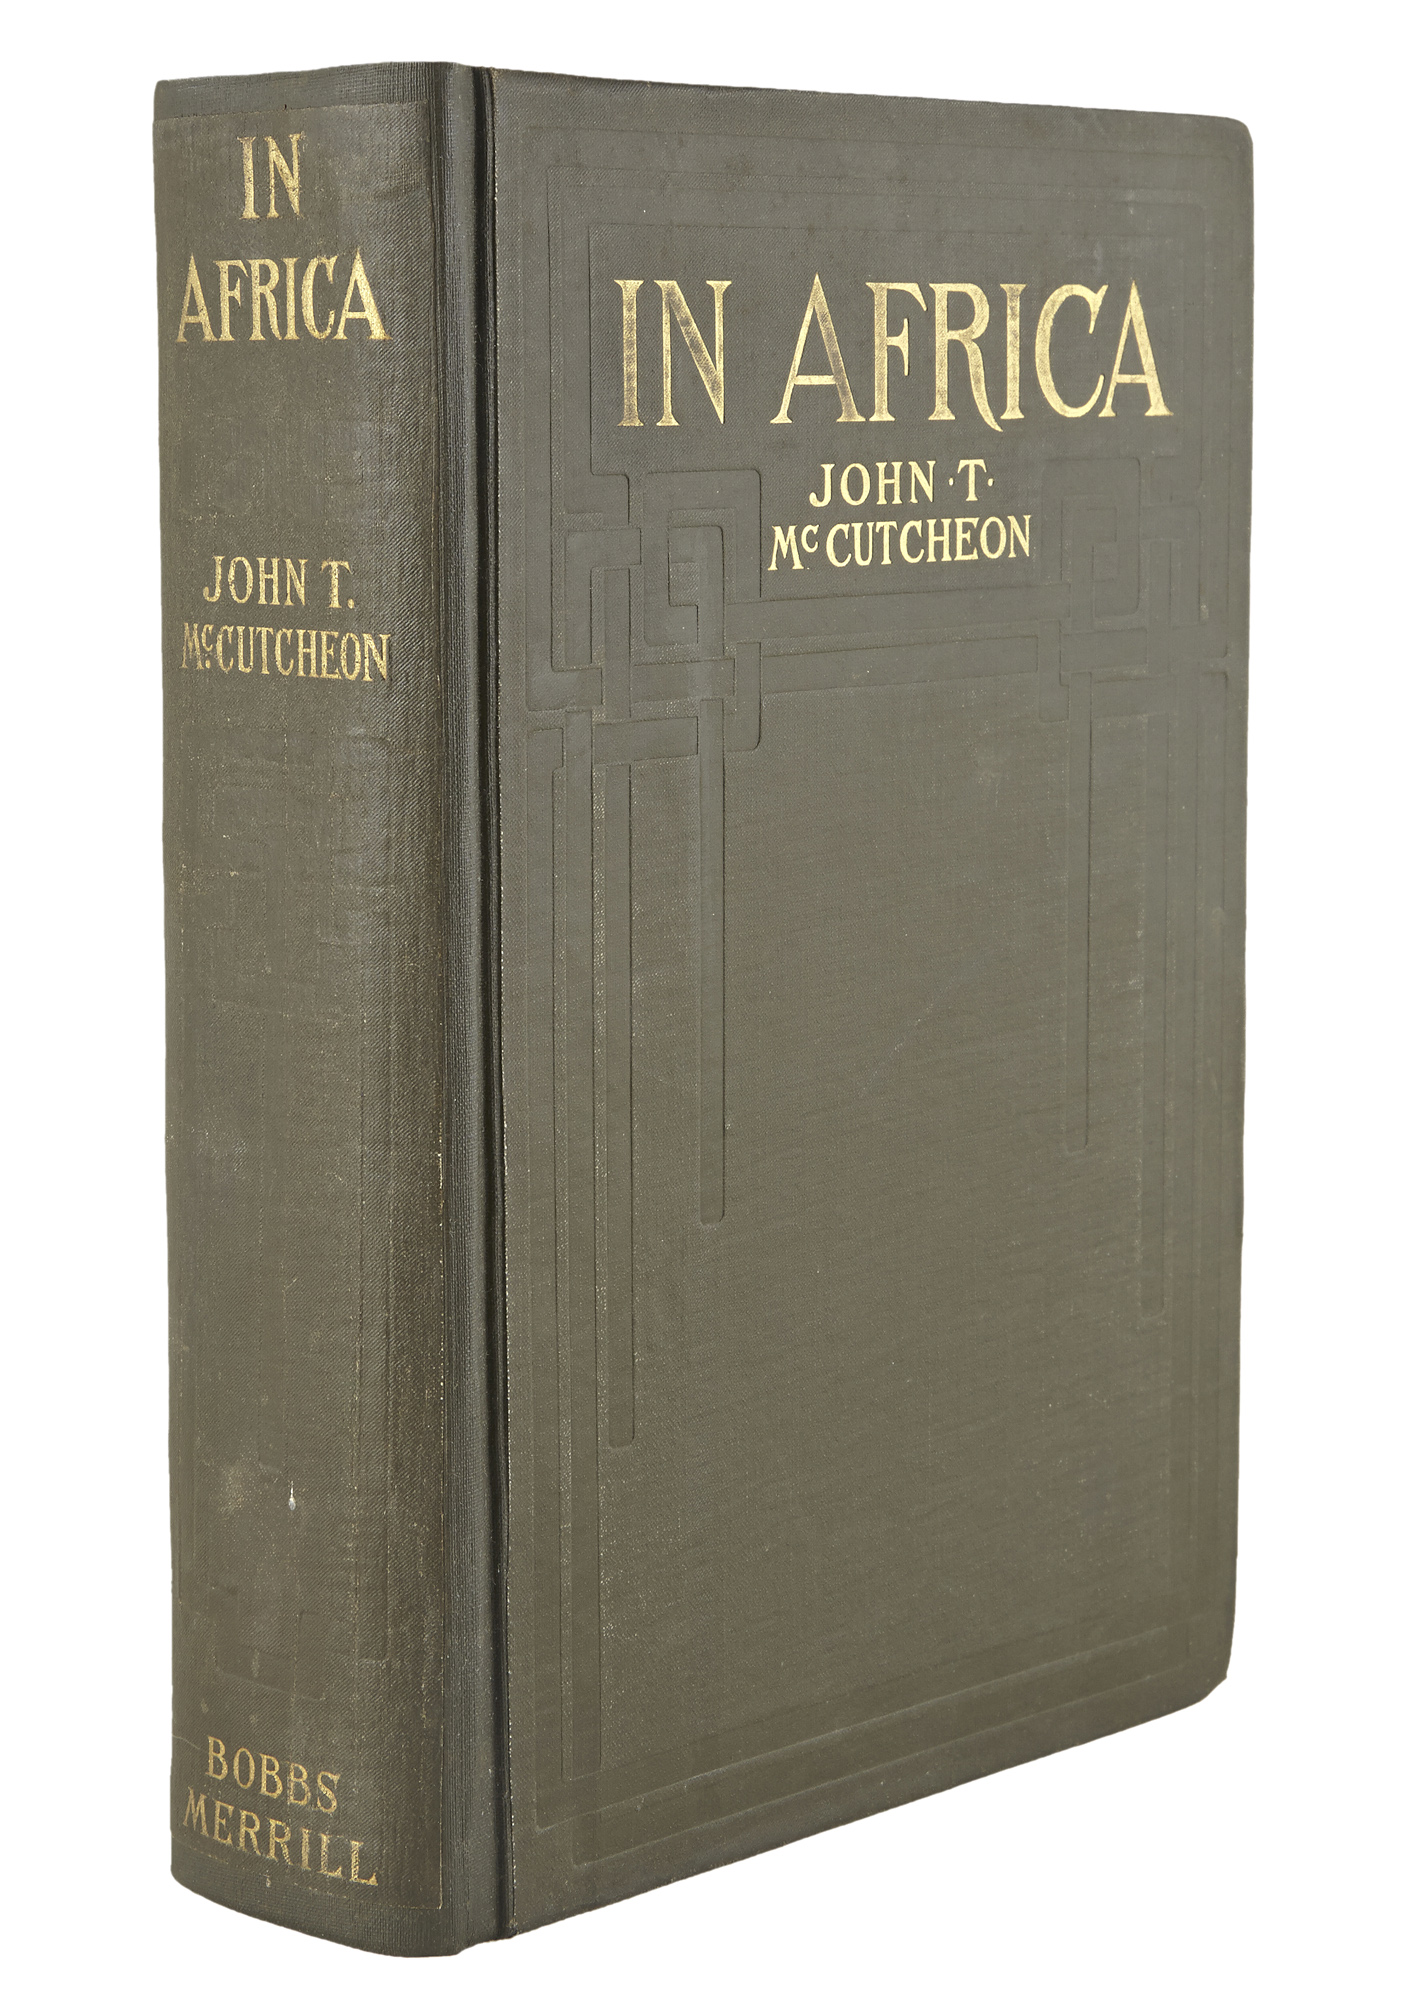 Lot image - [AFRICA]  McCUTCHEON, JOHN T. In Africa. Hunting Adventures in the Big Game Country.